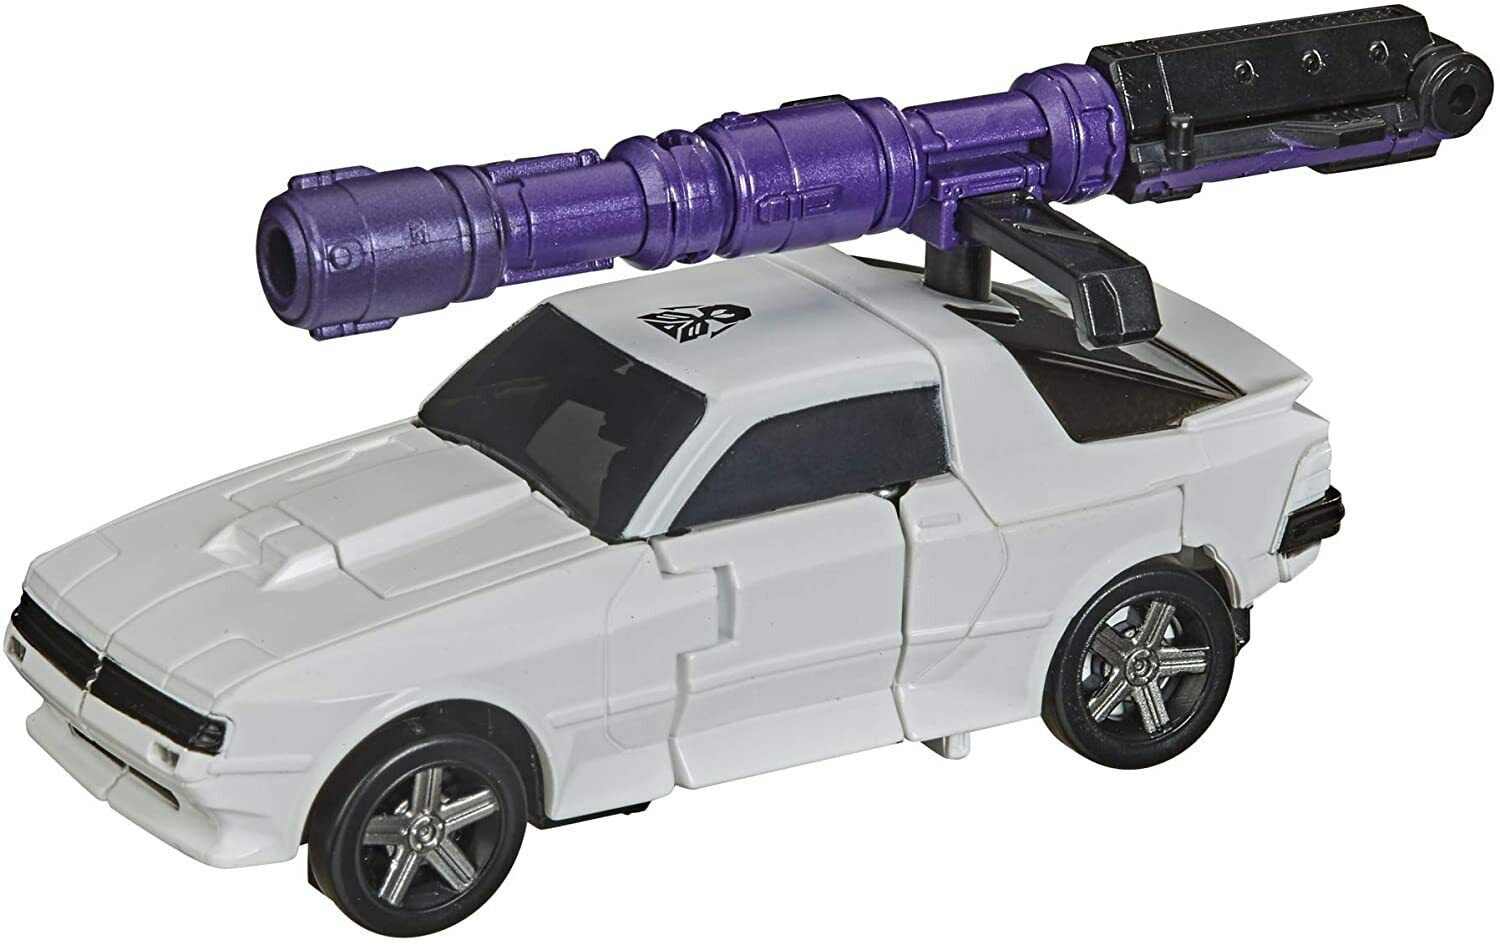 Transformers Generations Selects Deluxe Deluxe WFC-GS16 Bug Bite